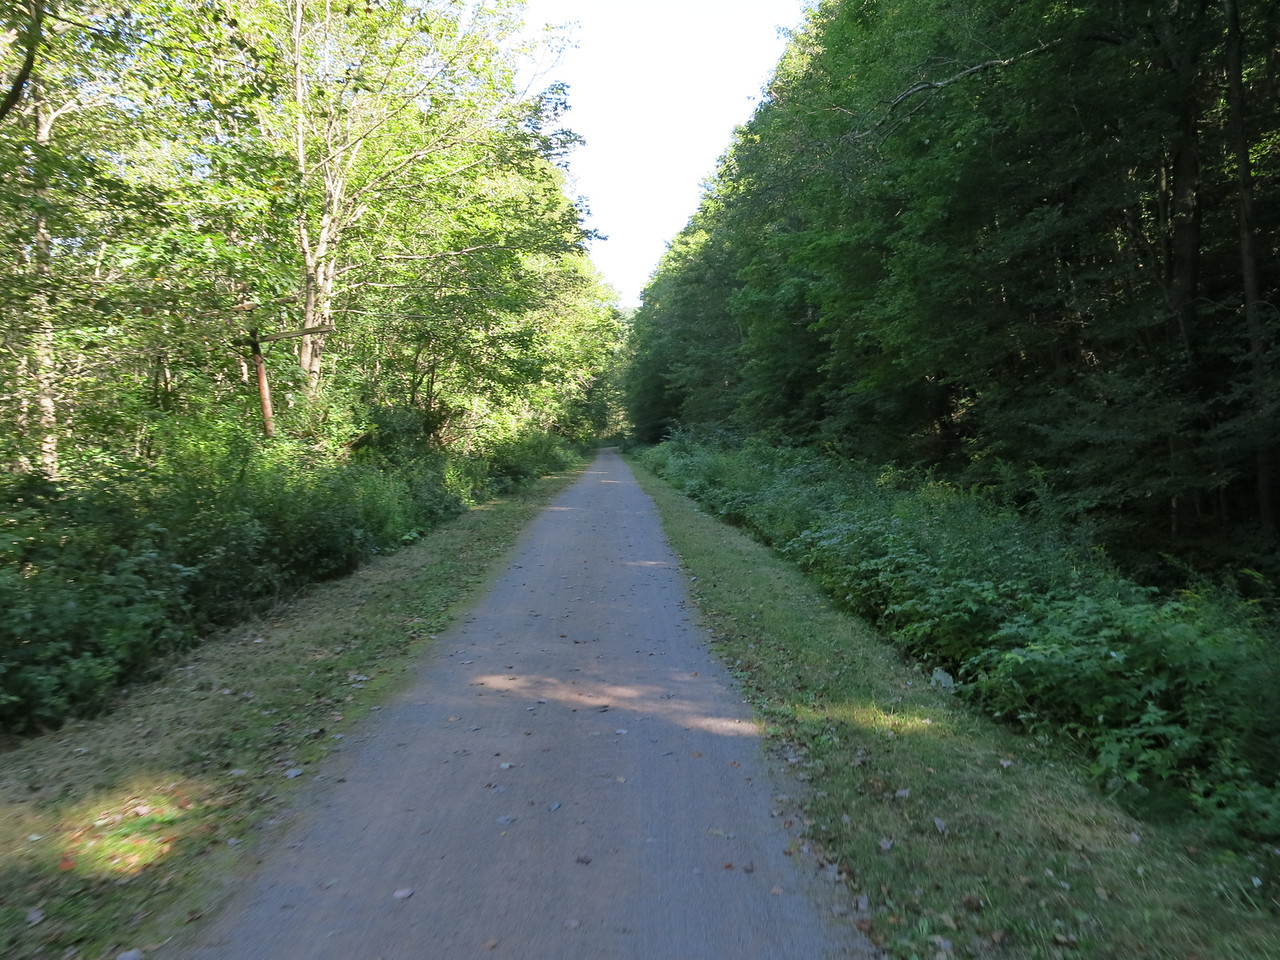 Trees no longer cover the trail